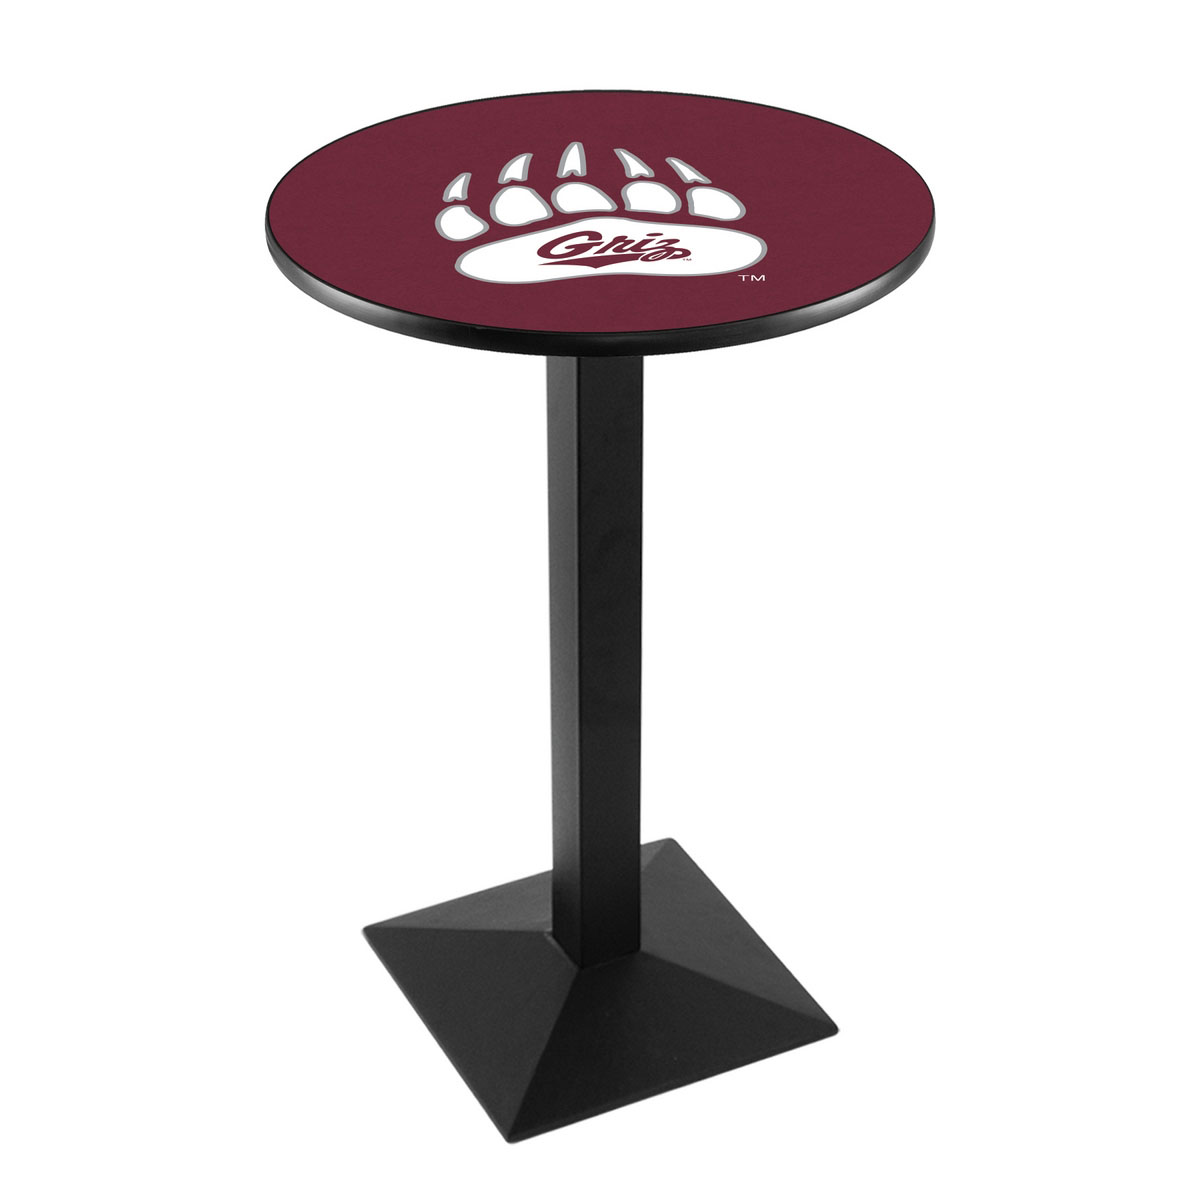 Stunning University Montana Logo Pub Bar Table Square Stand Product Photo